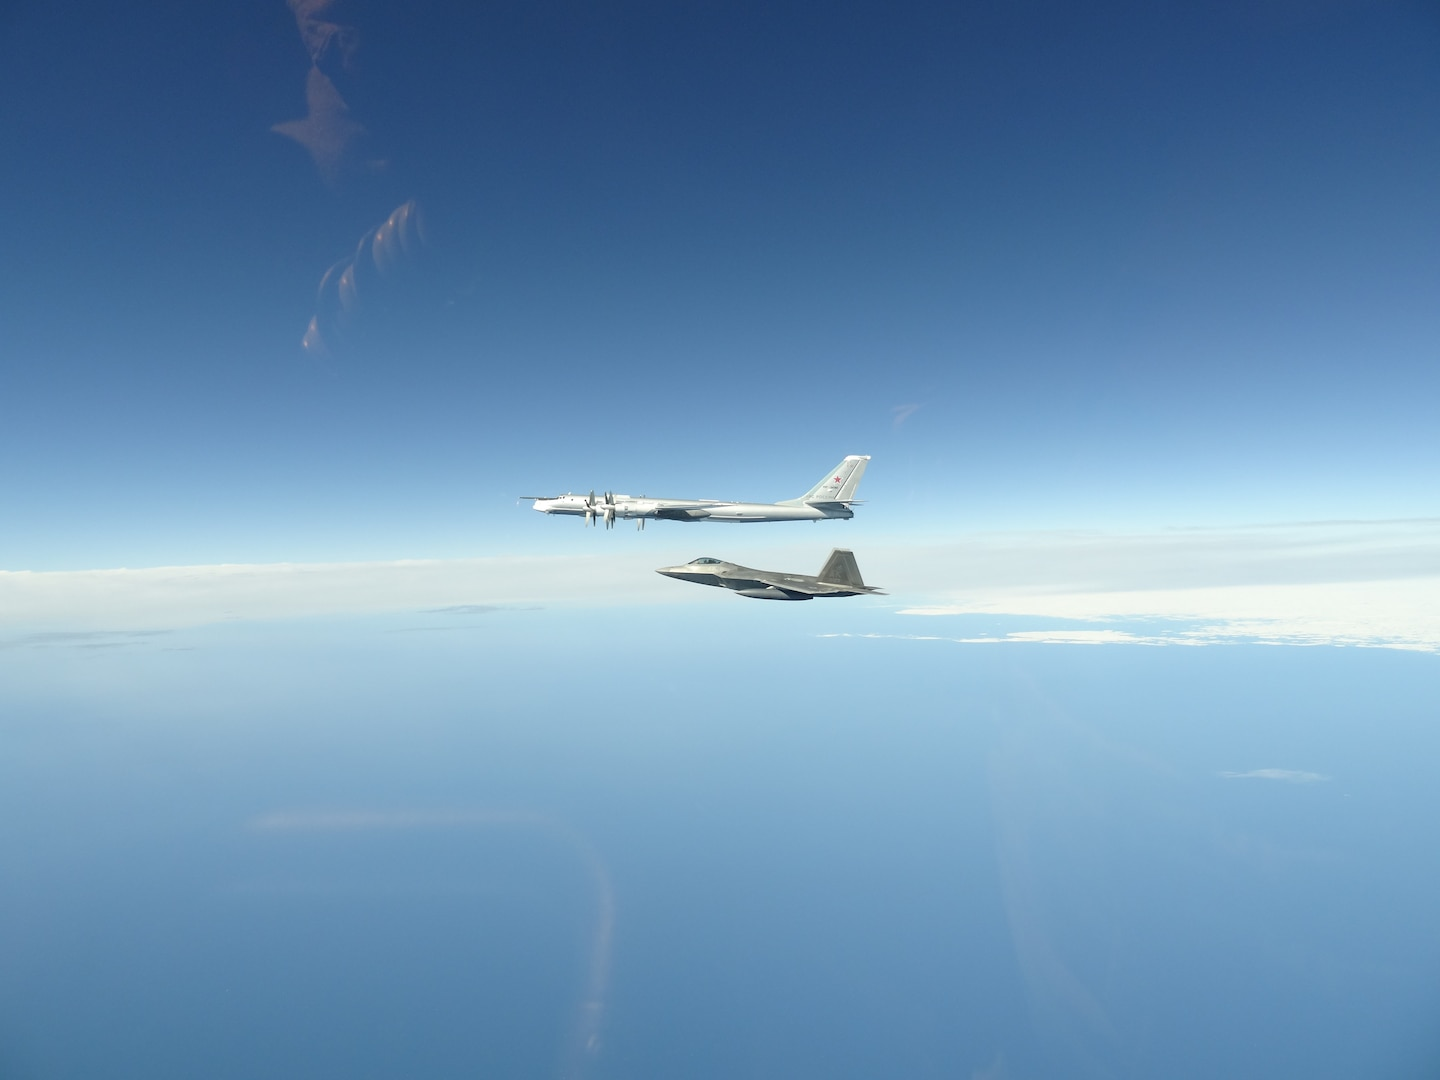 A North American Aerospace Defense Command F-22 Raptor flies next to a Russian Tu-95 bomber during an intercept in the Alaskan Air Defense Identification Zone June 16, 2020.